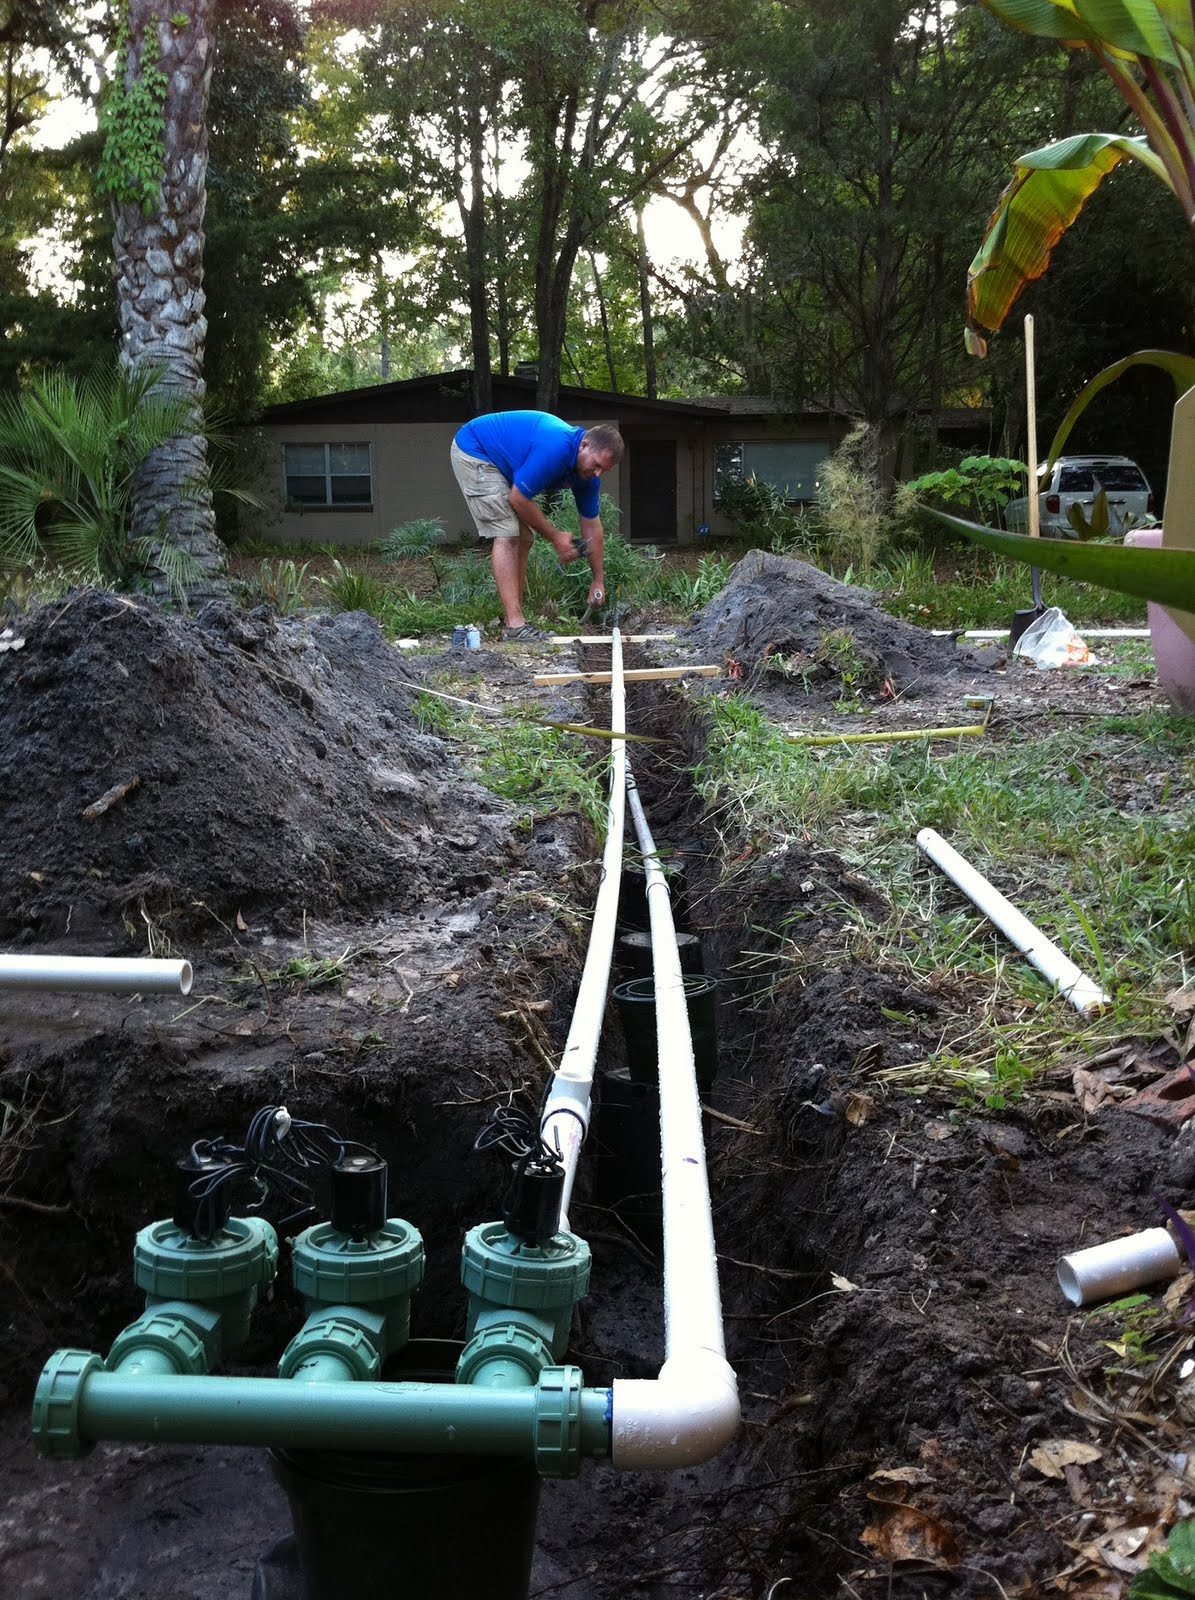 Drip Irrigation System Home Depot submited images